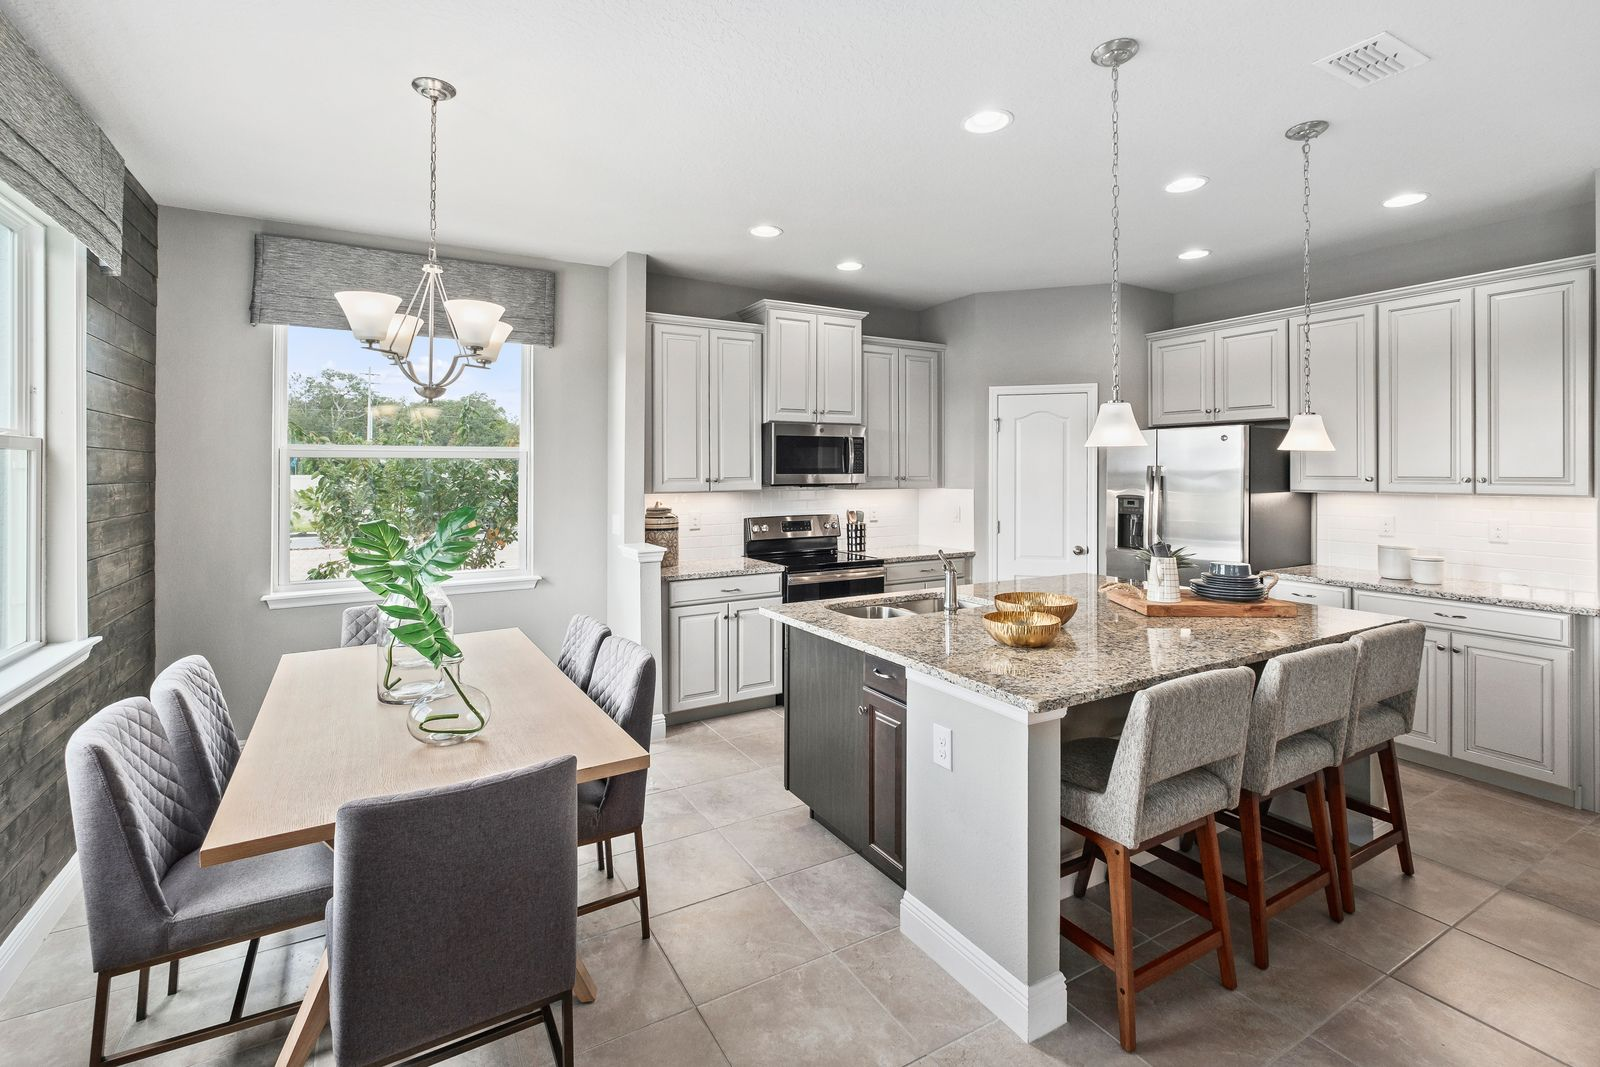 Kitchen-in-Estero Bay-at-Orchid Estates-in-Apopka